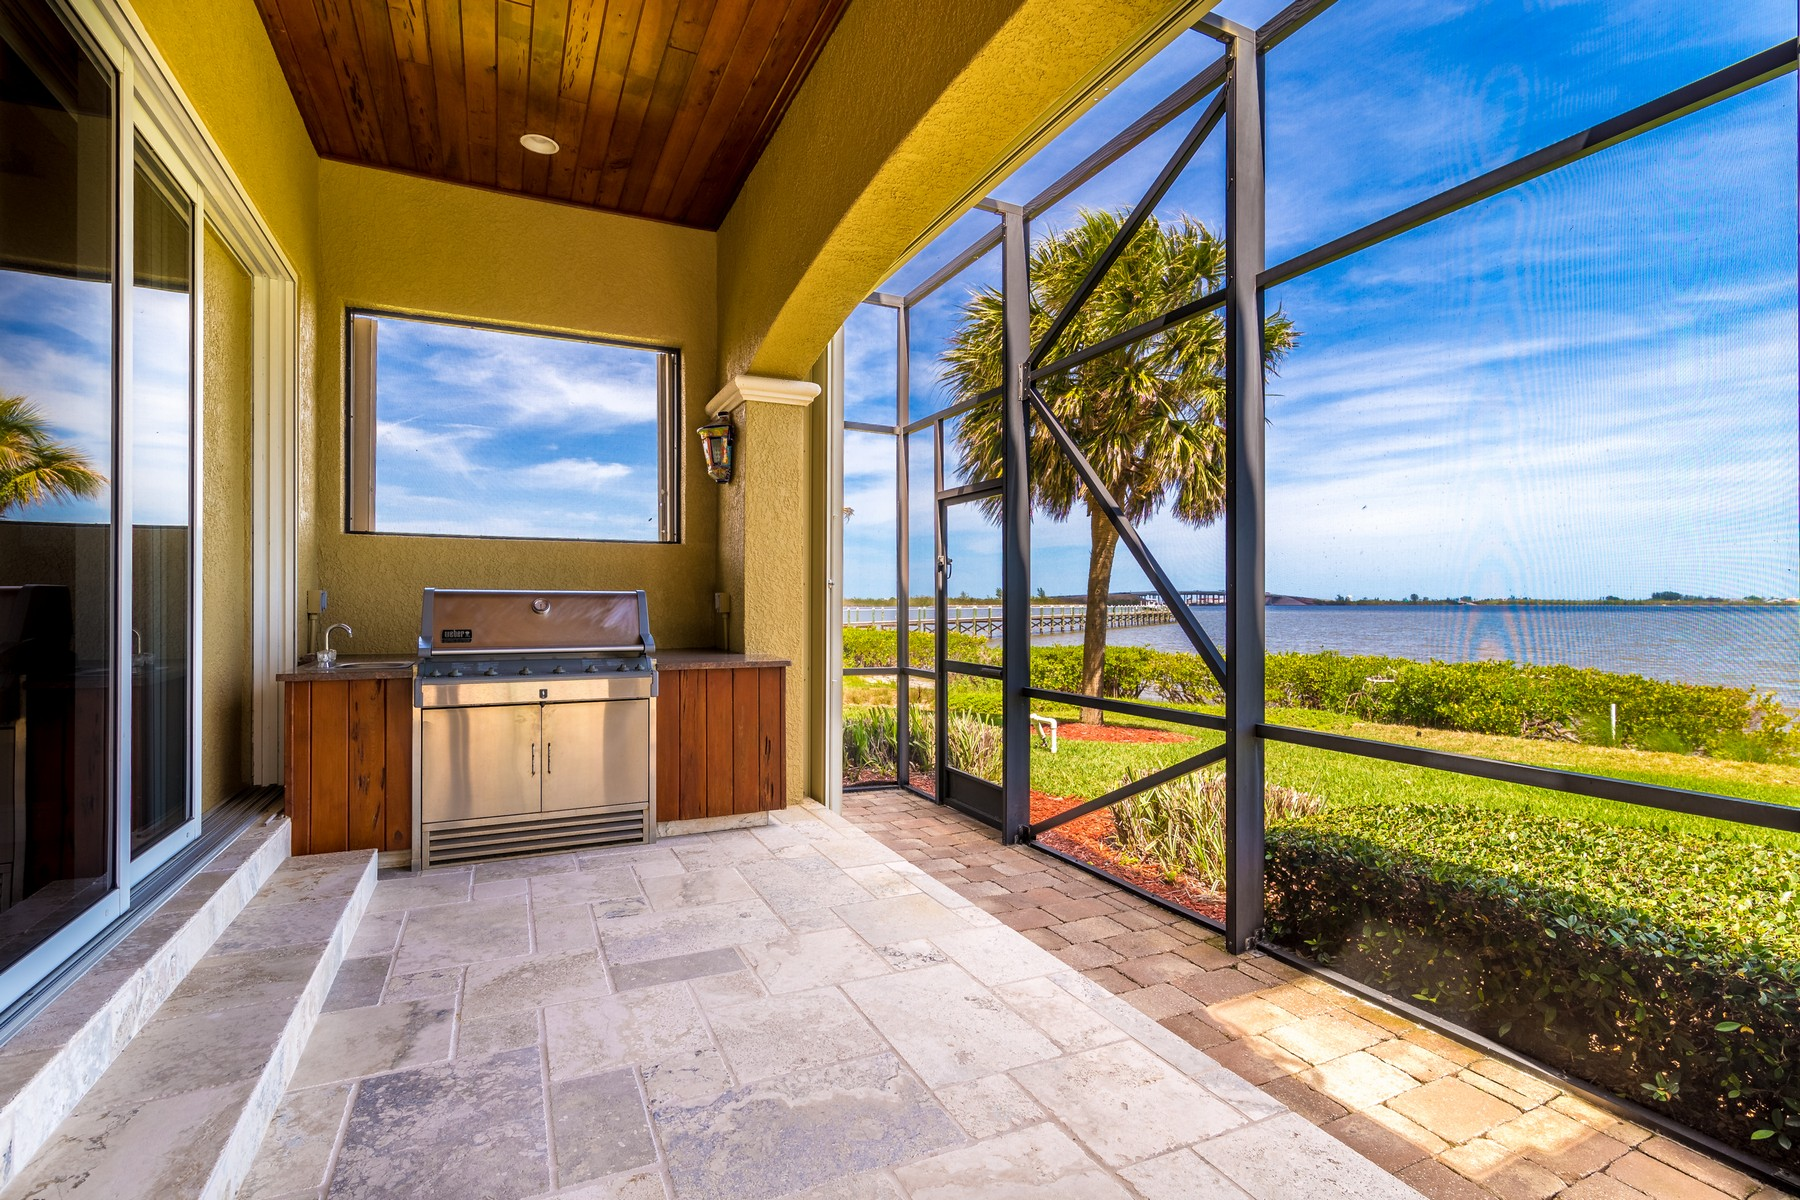 Additional photo for property listing at An Absolute Gem! 8582 Eden Isles Merritt Island, Floride 32952 États-Unis